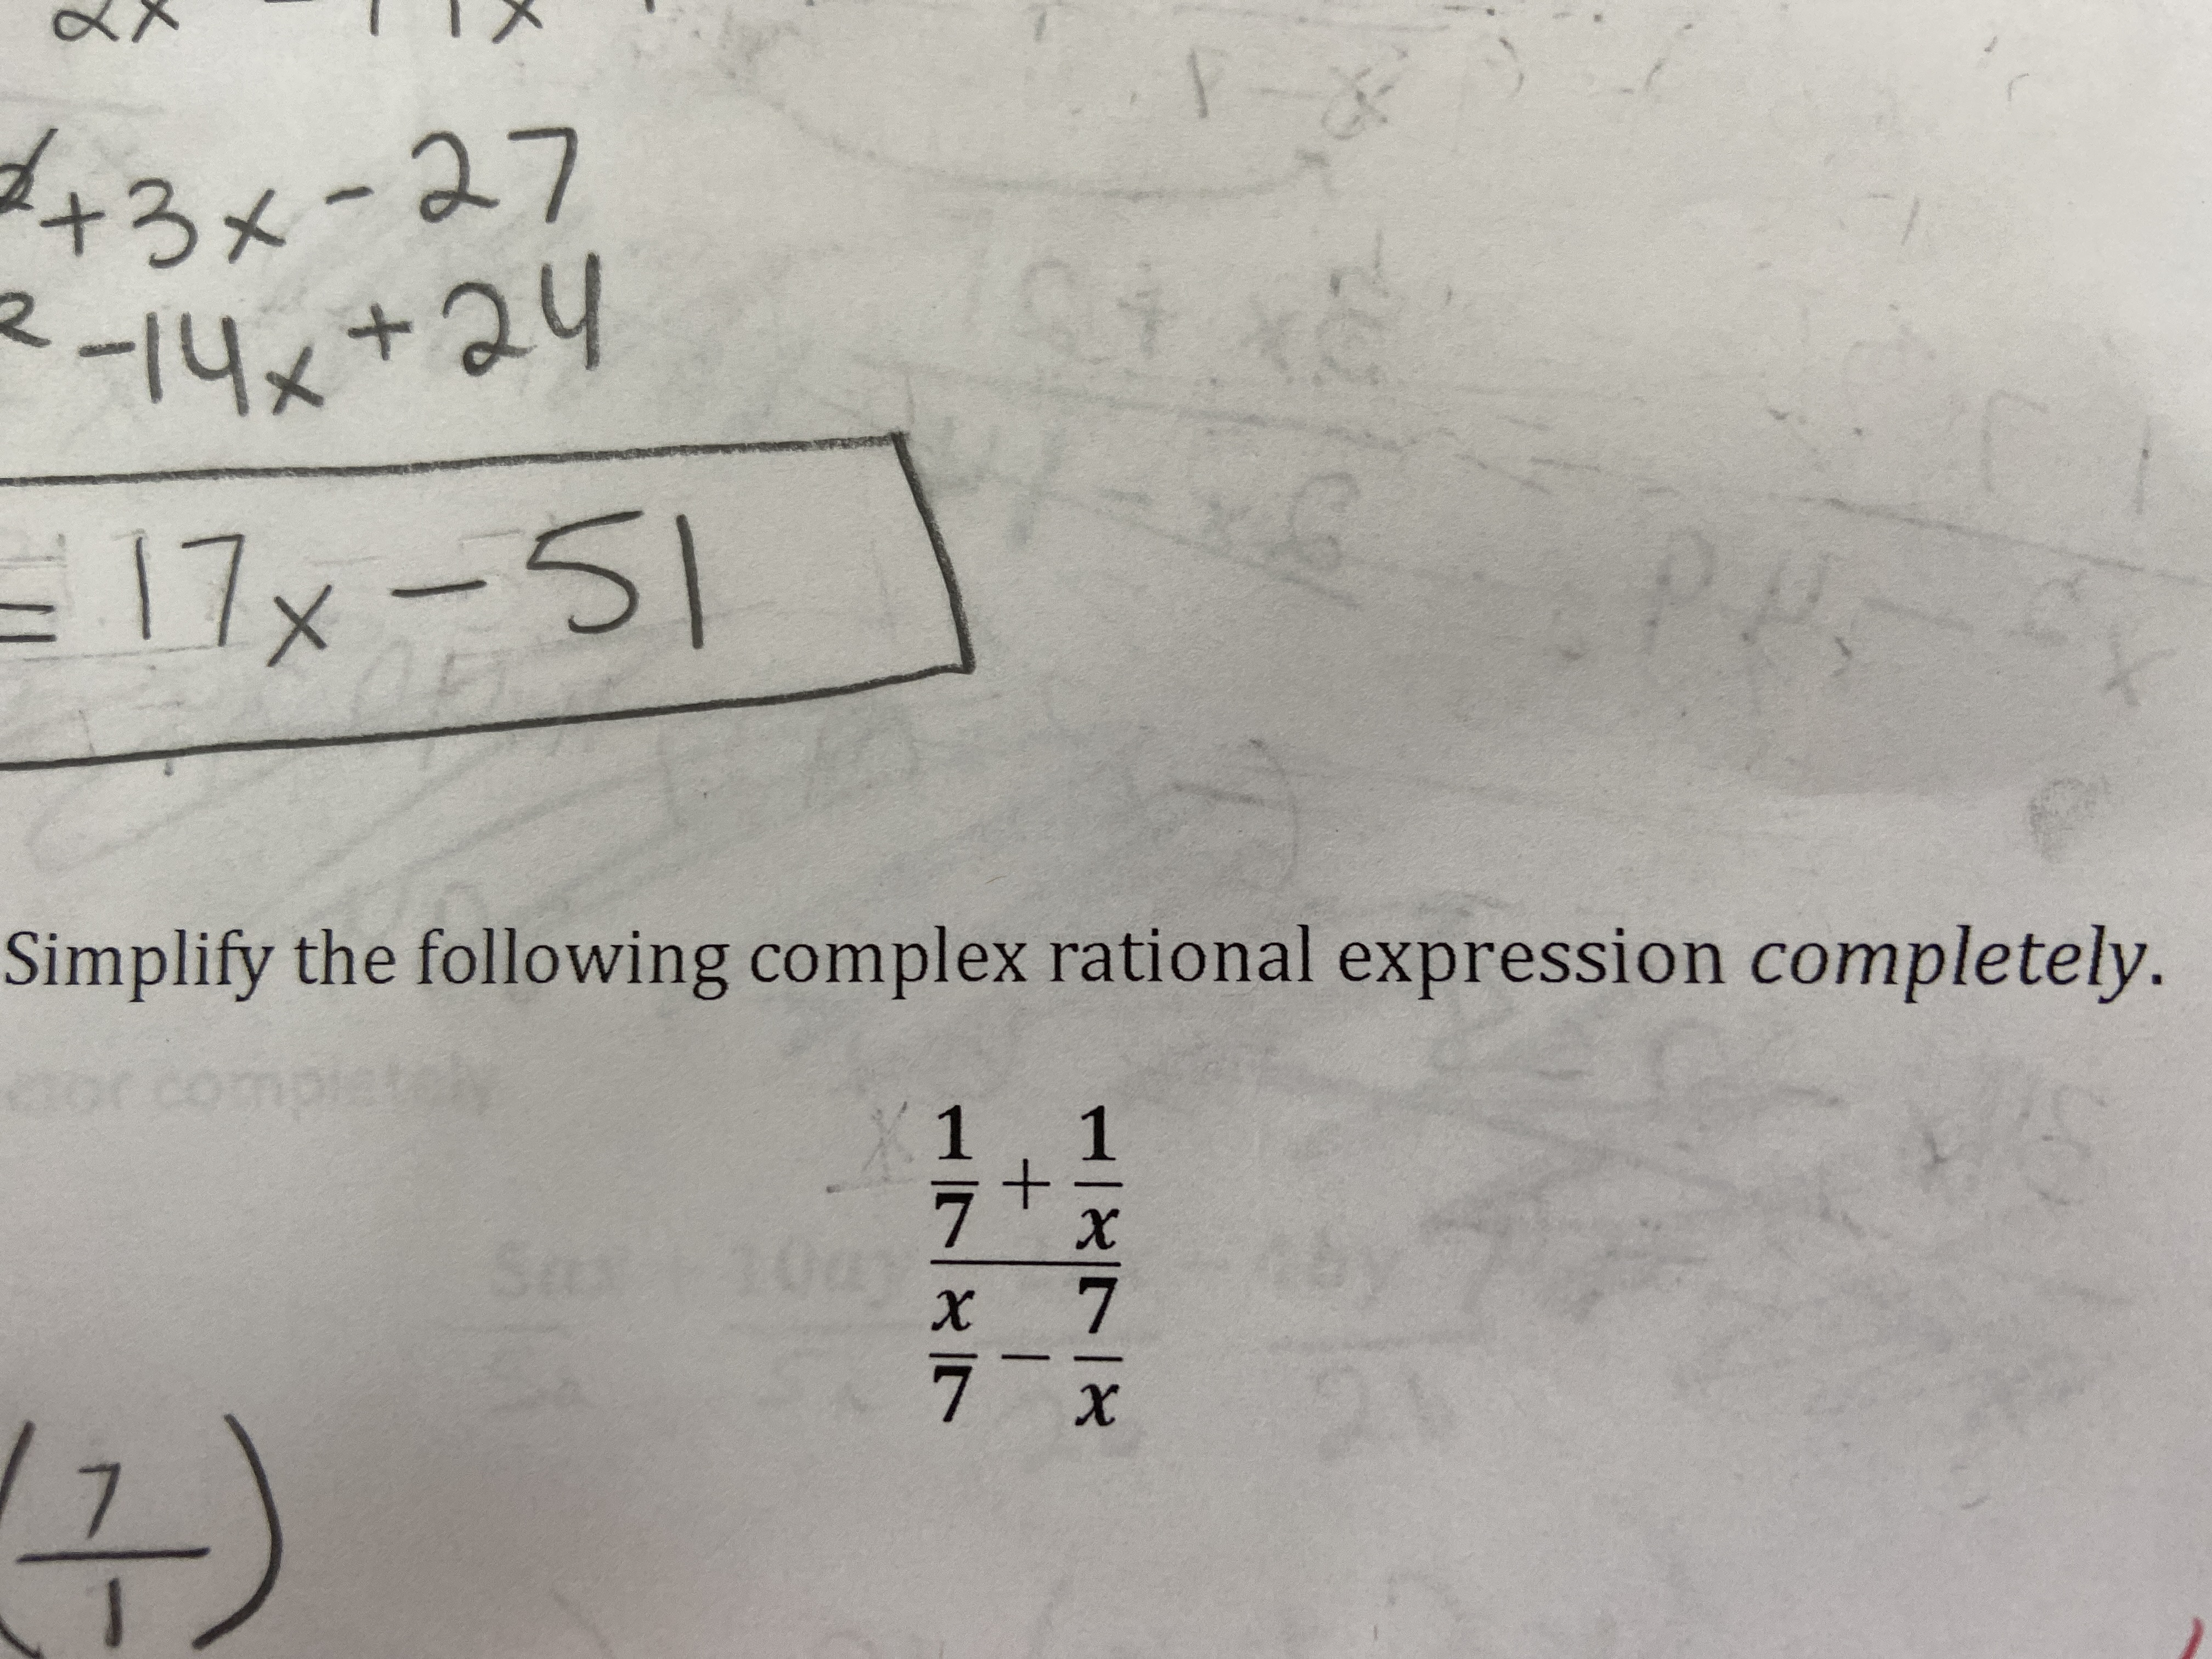 + Y- +3メー27 14+24 t 三17x-51 Simplify the following complex rational expression completely. h X1 1 7 007 7 Sau 7 X 7